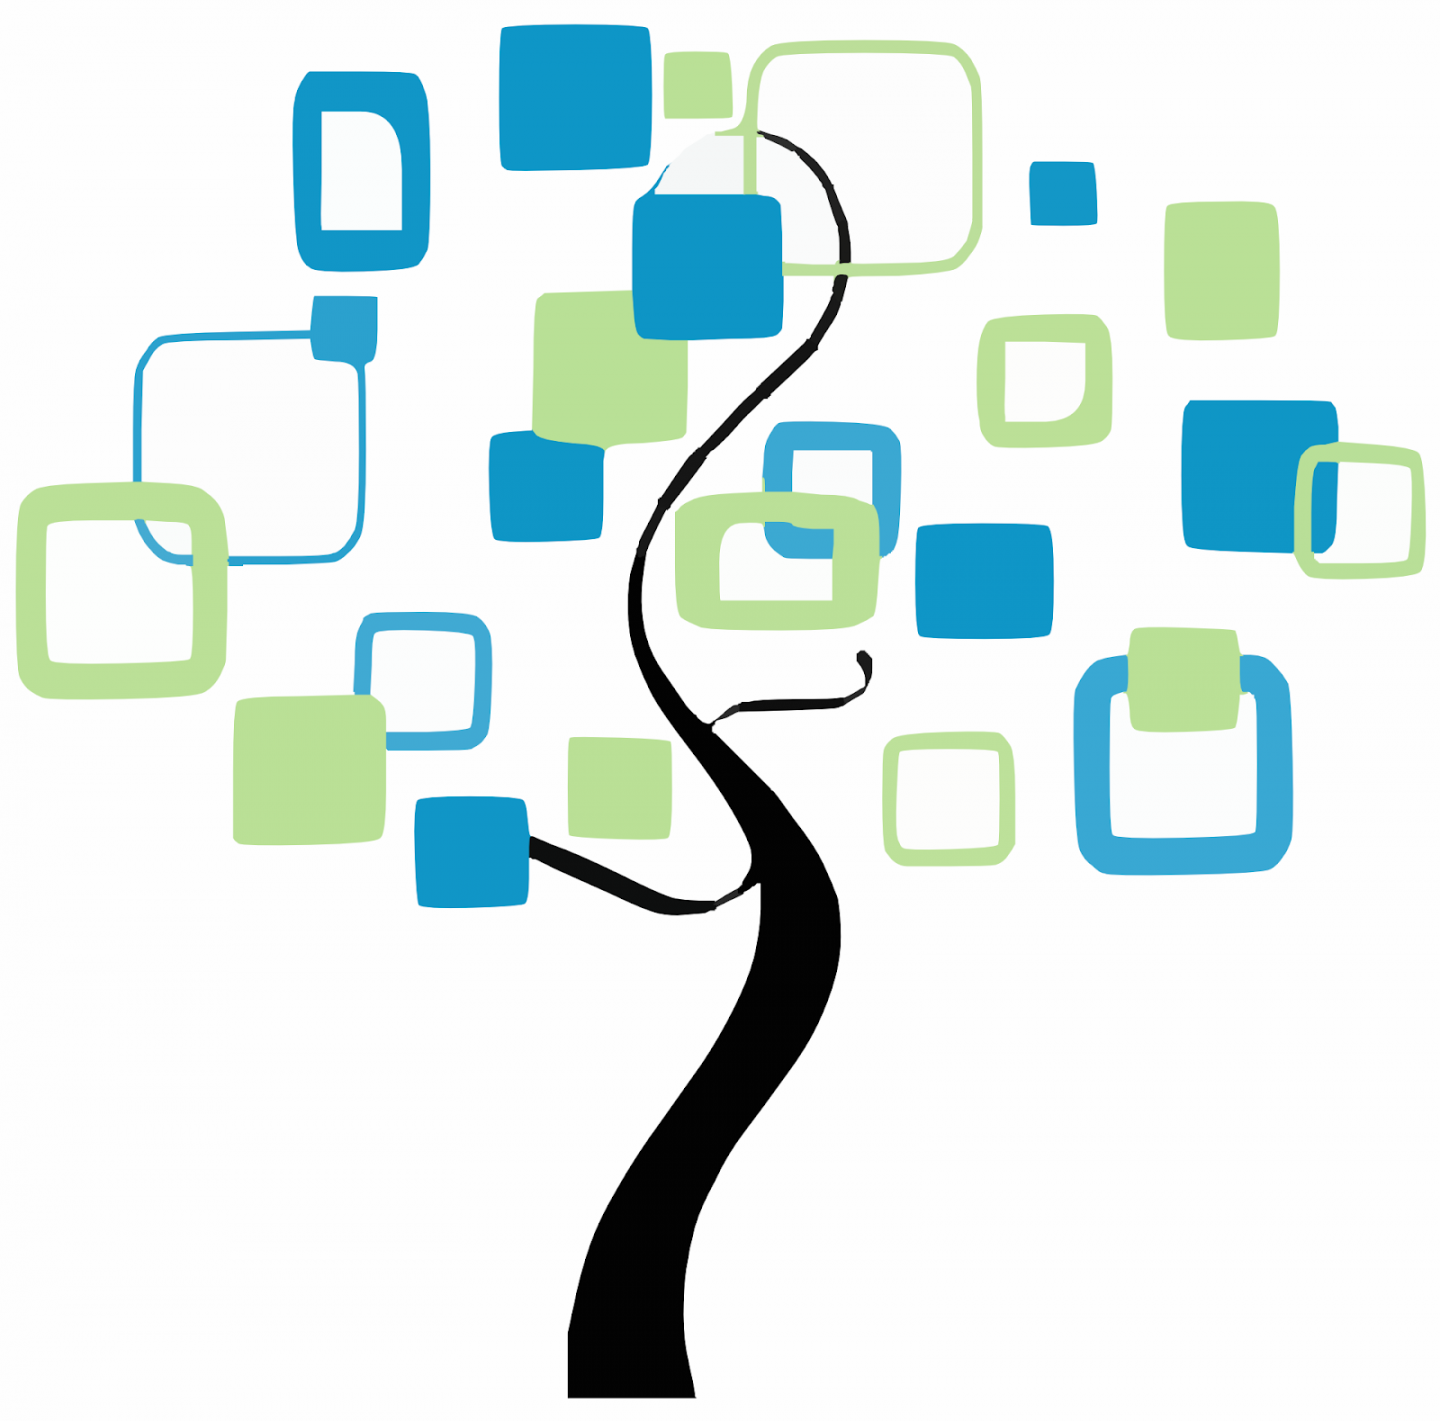 WHY RESEARCHING YOUR FAMILY'S GENEALOGY IS IMPORTANT